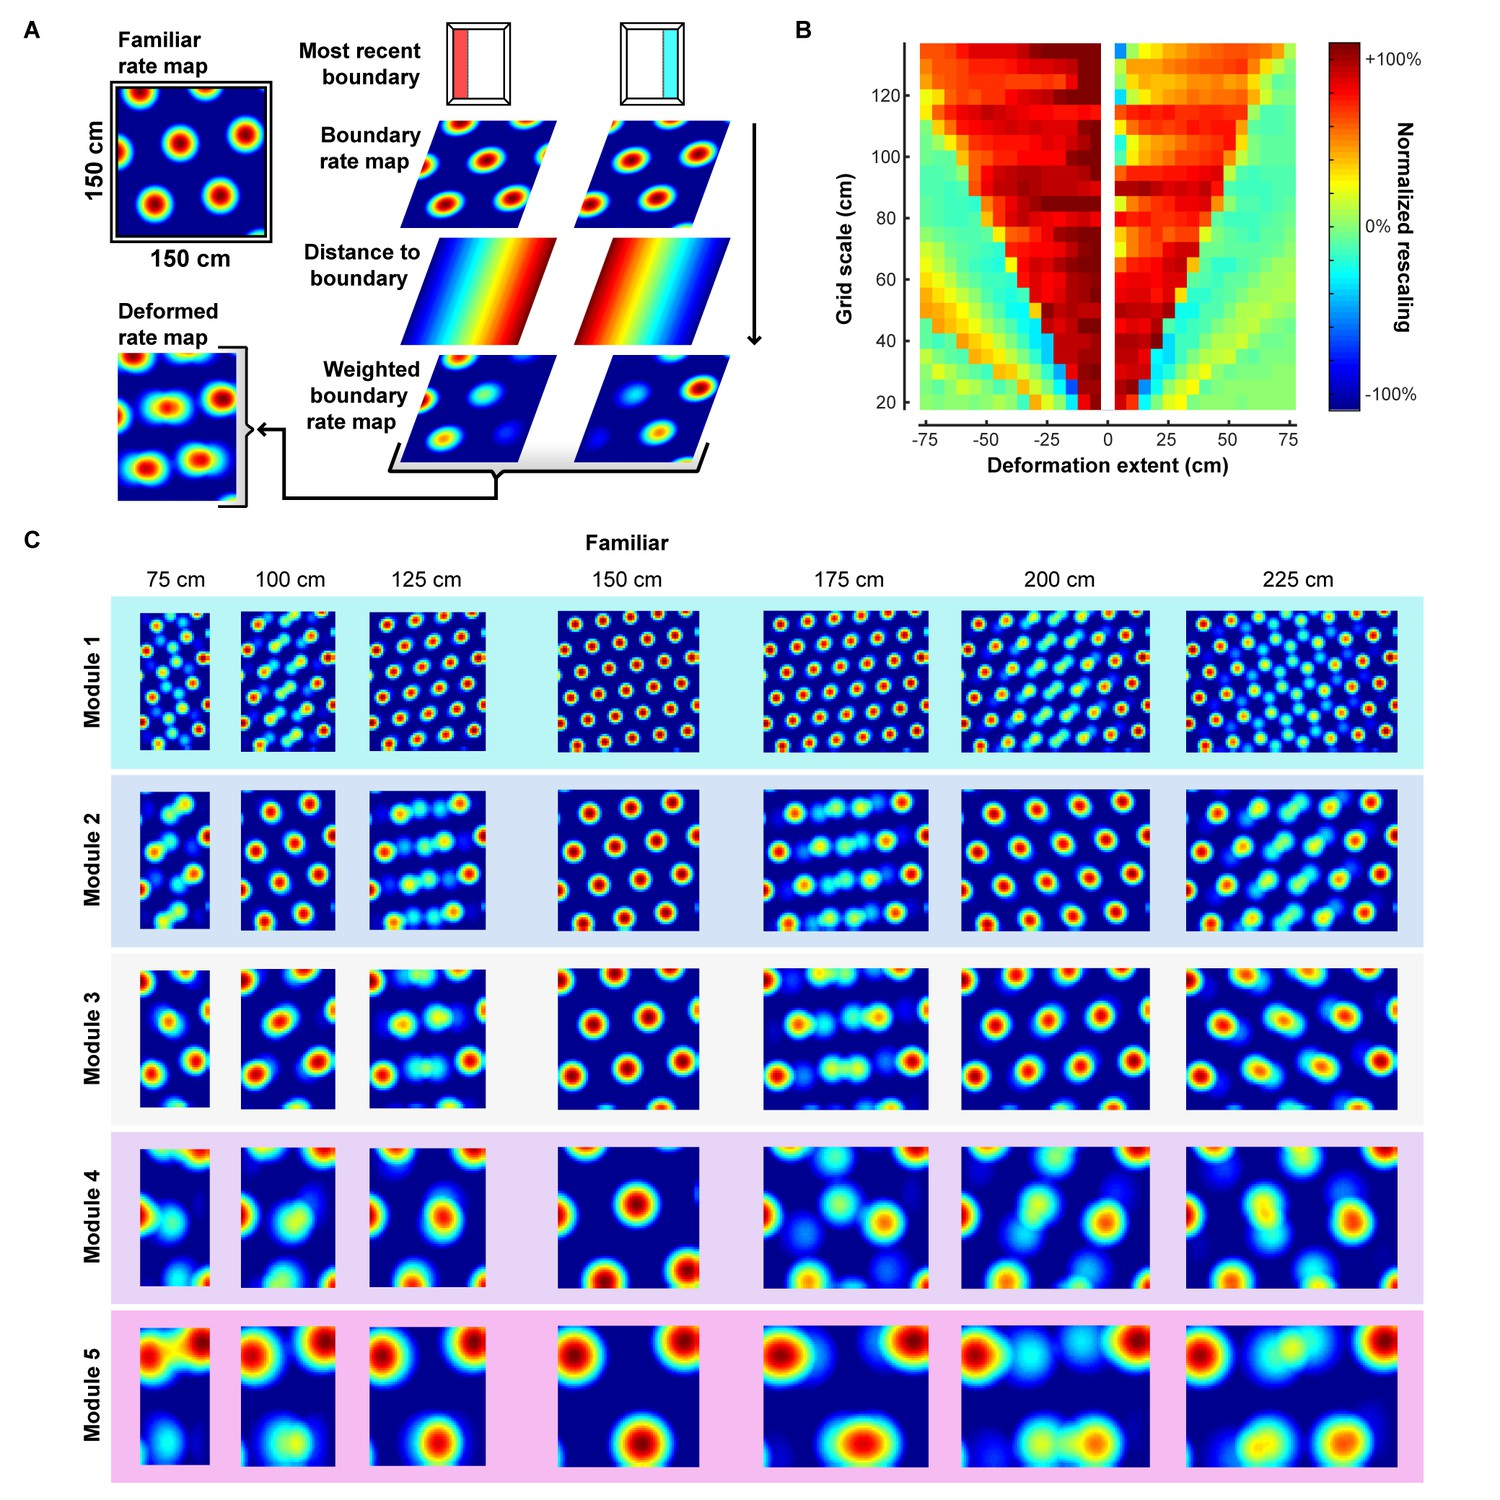 Environmental deformations dynamically shift the grid cell